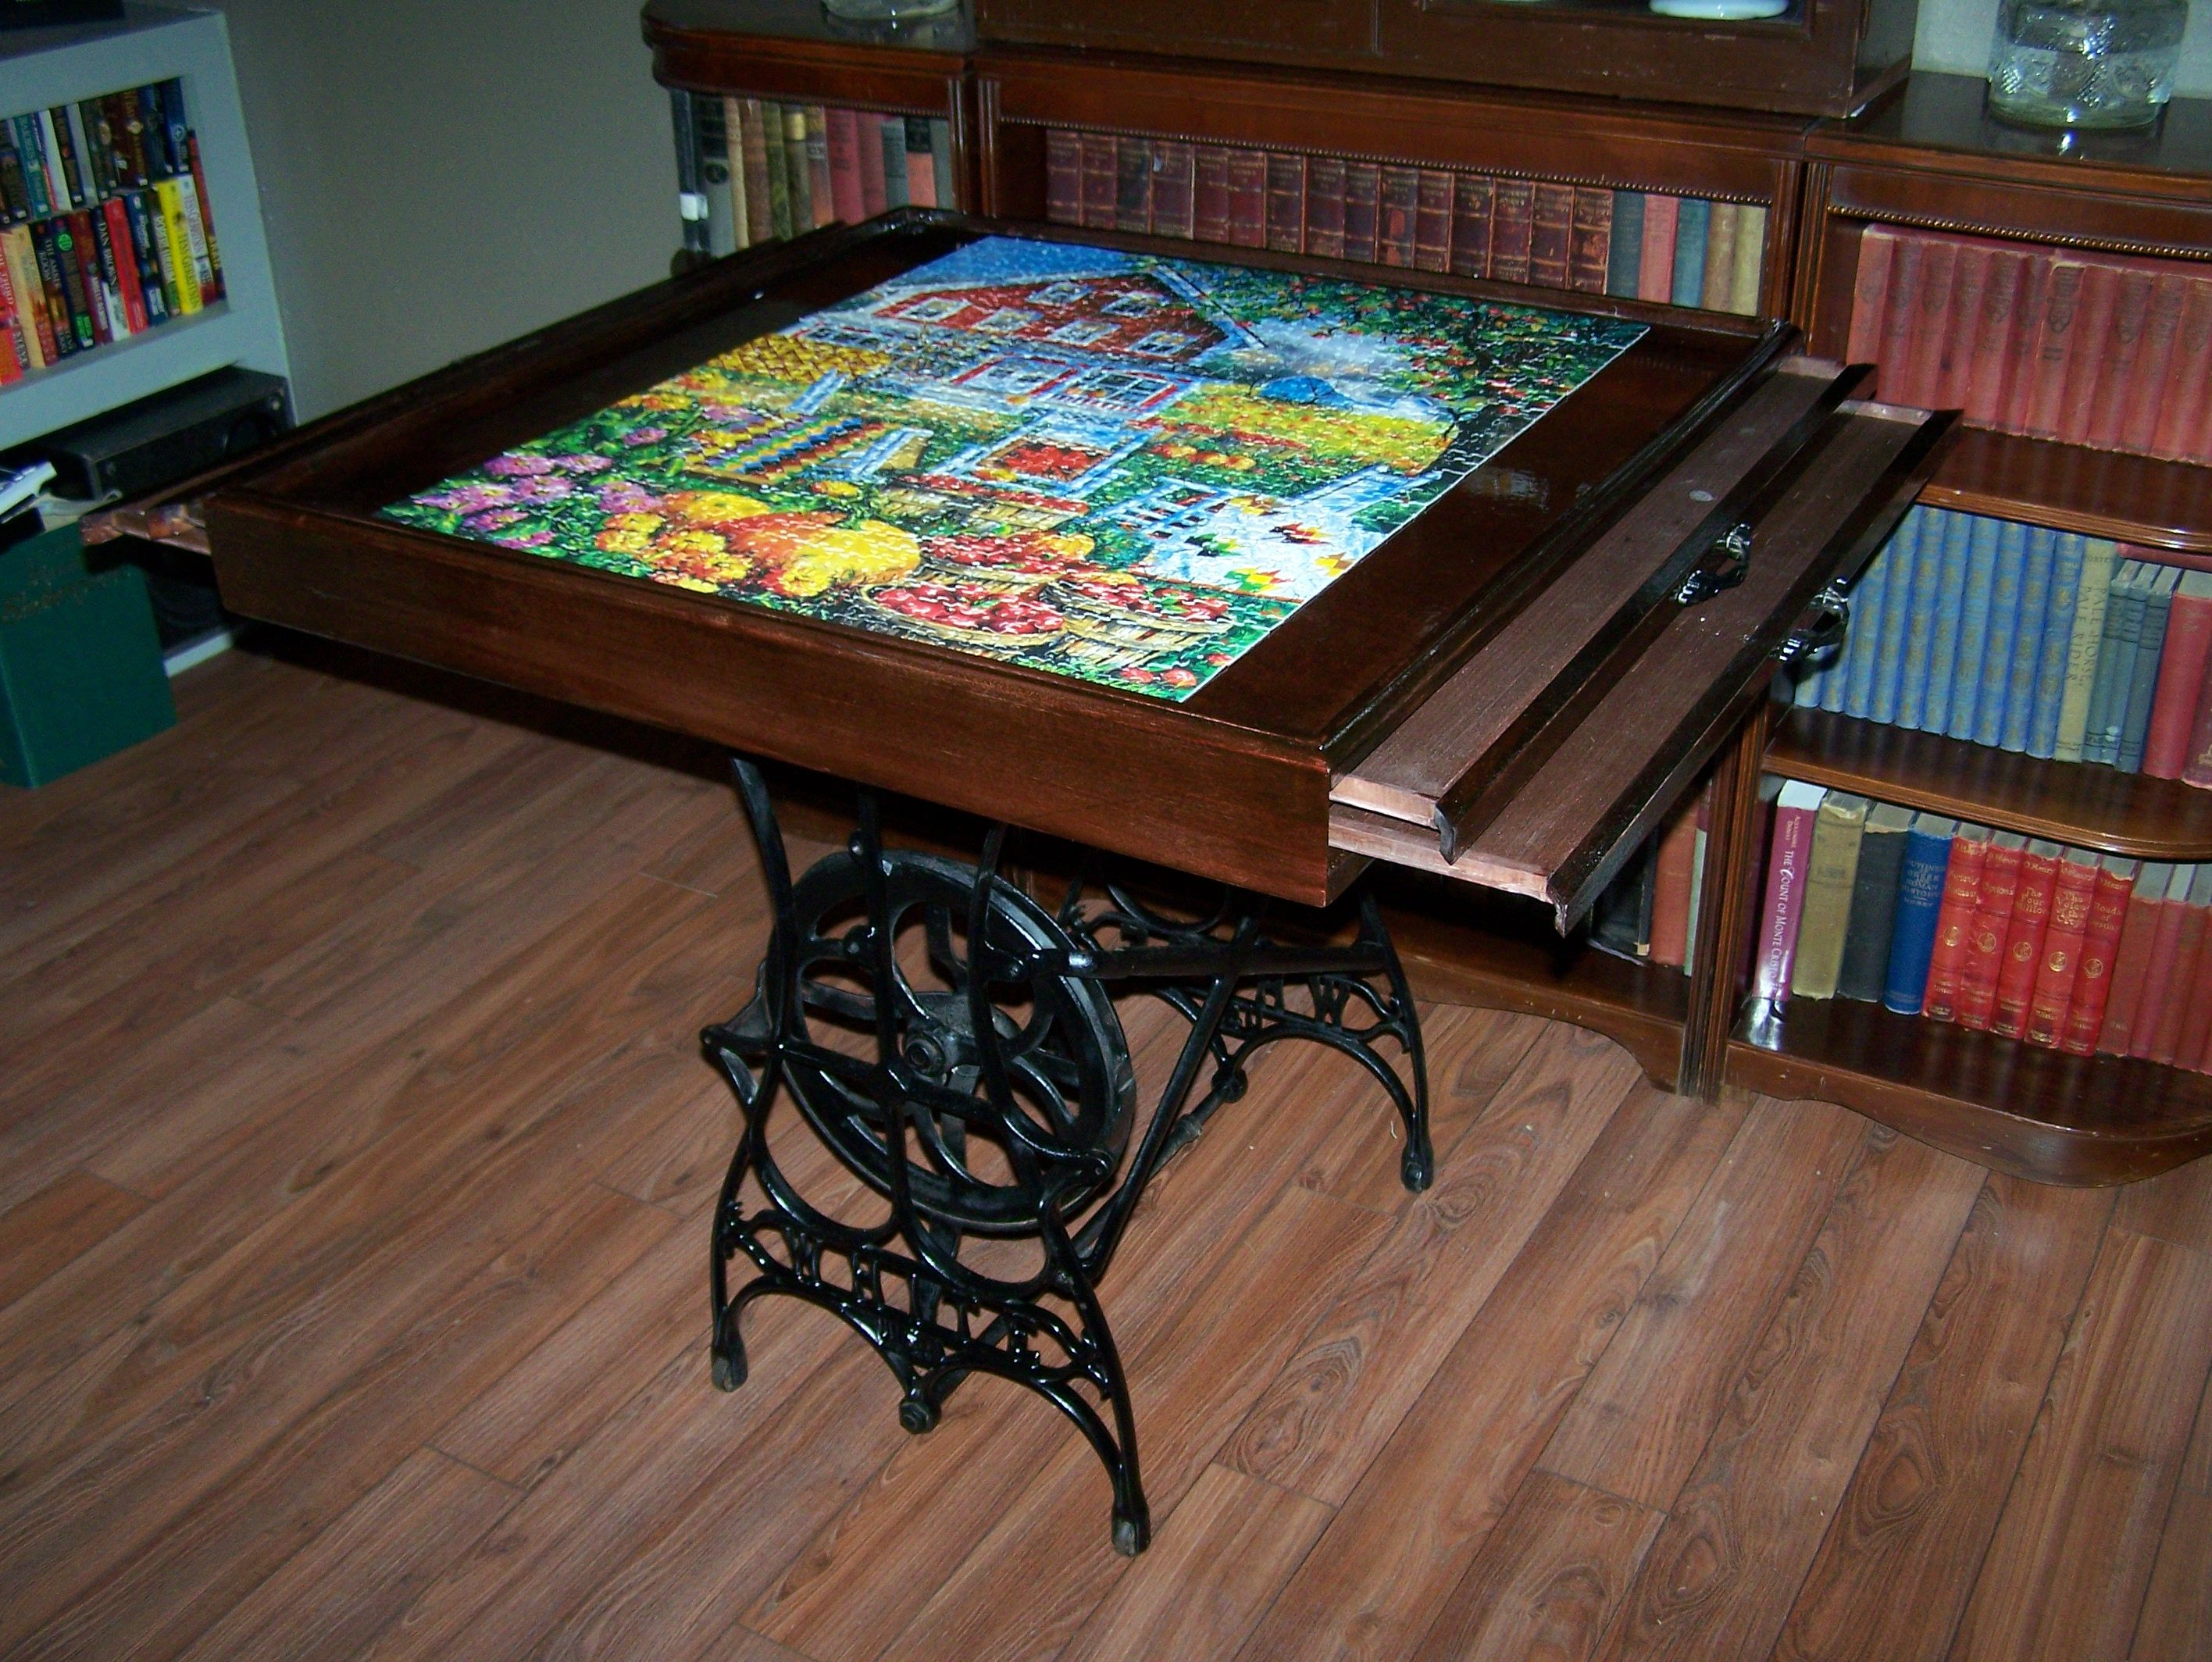 Steampunk Puzzle Table Puzzle Table Jigsaw Puzzle Table Puzzle Storage